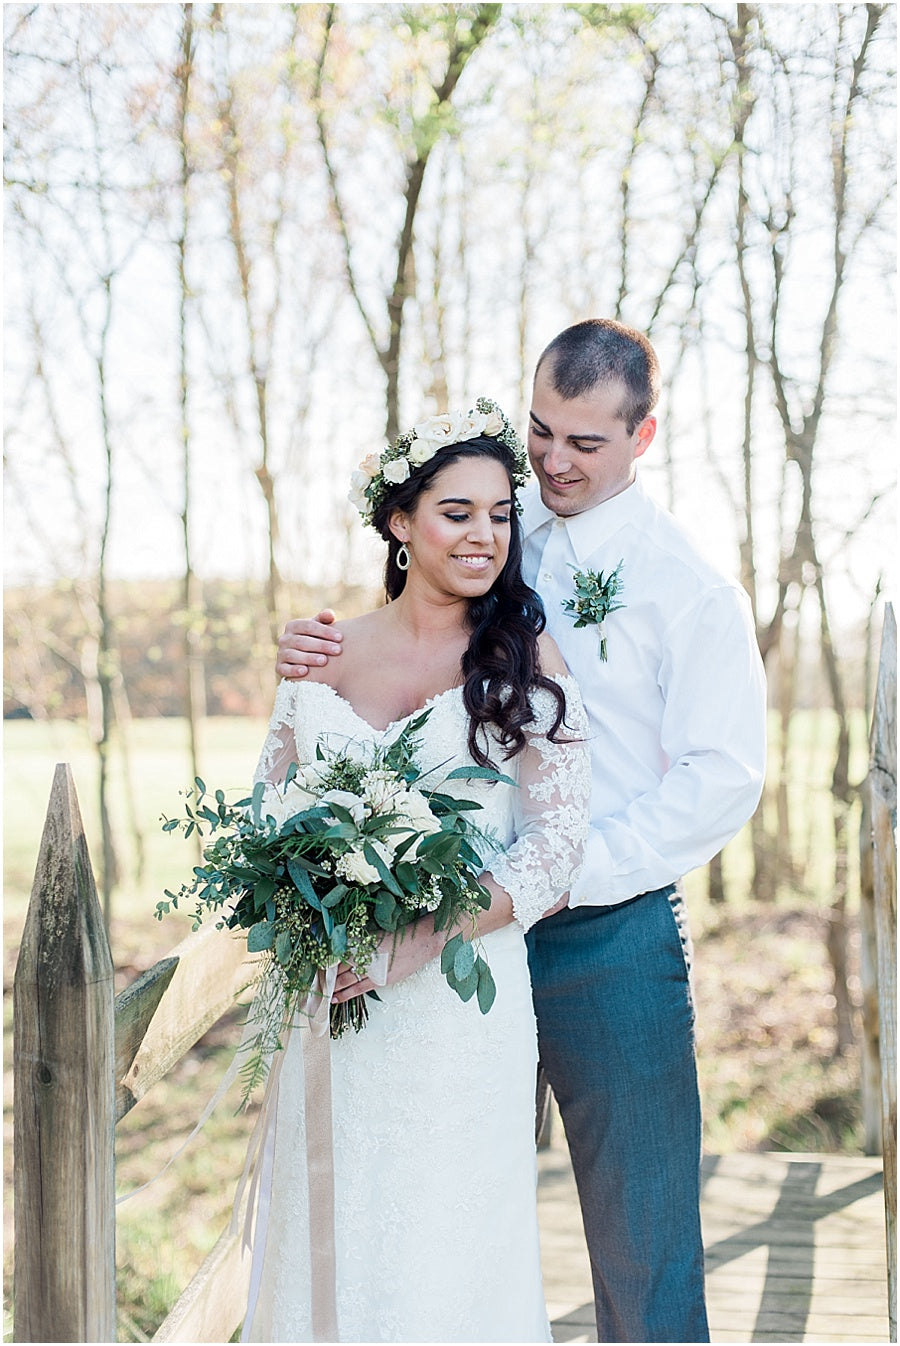 leah adkins photography // little miss lovely floral design // grey and green bridal bouquet and flower crown